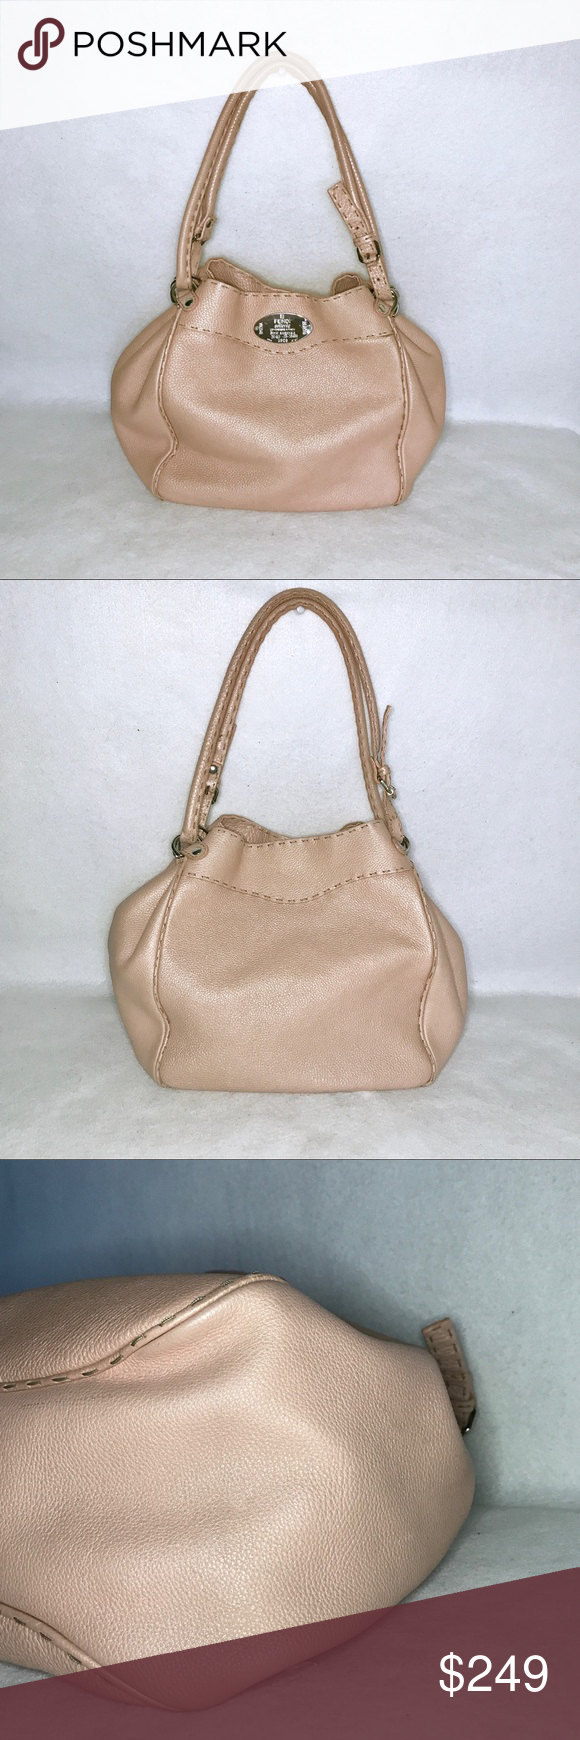 2e0666f5463d Auth Pink FENDI Selleria Pebbled Leather Hobo Bag 🌸 100% Authentic 🌸 NO  DAMAGE -